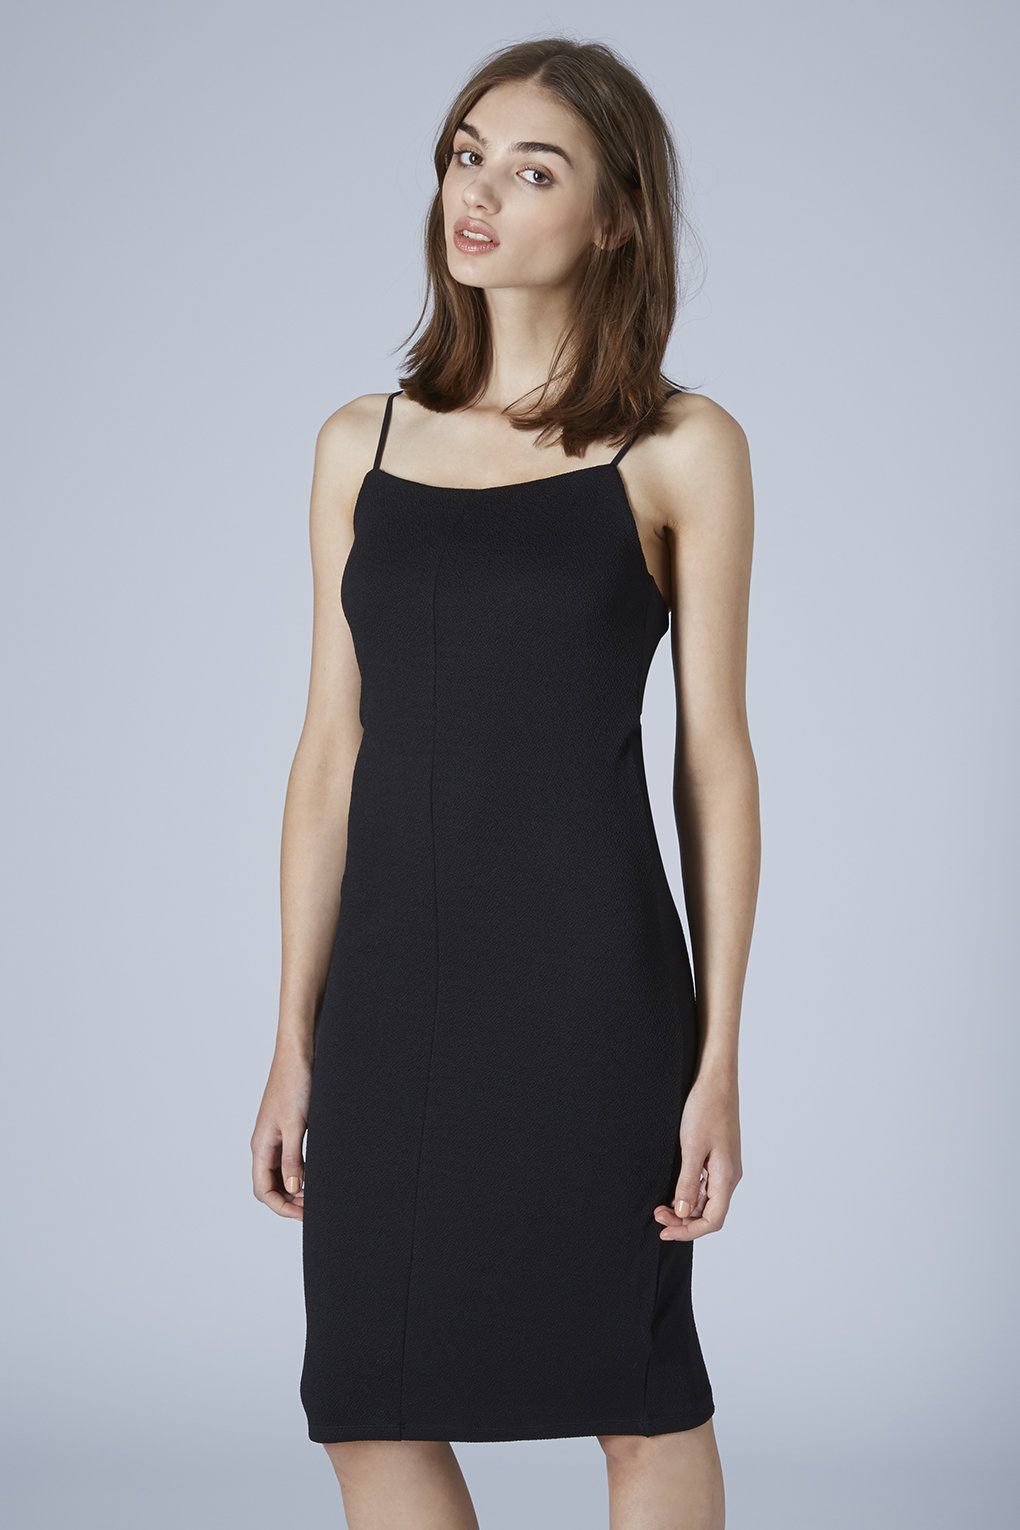 Now black bodycon dress square neck up top young